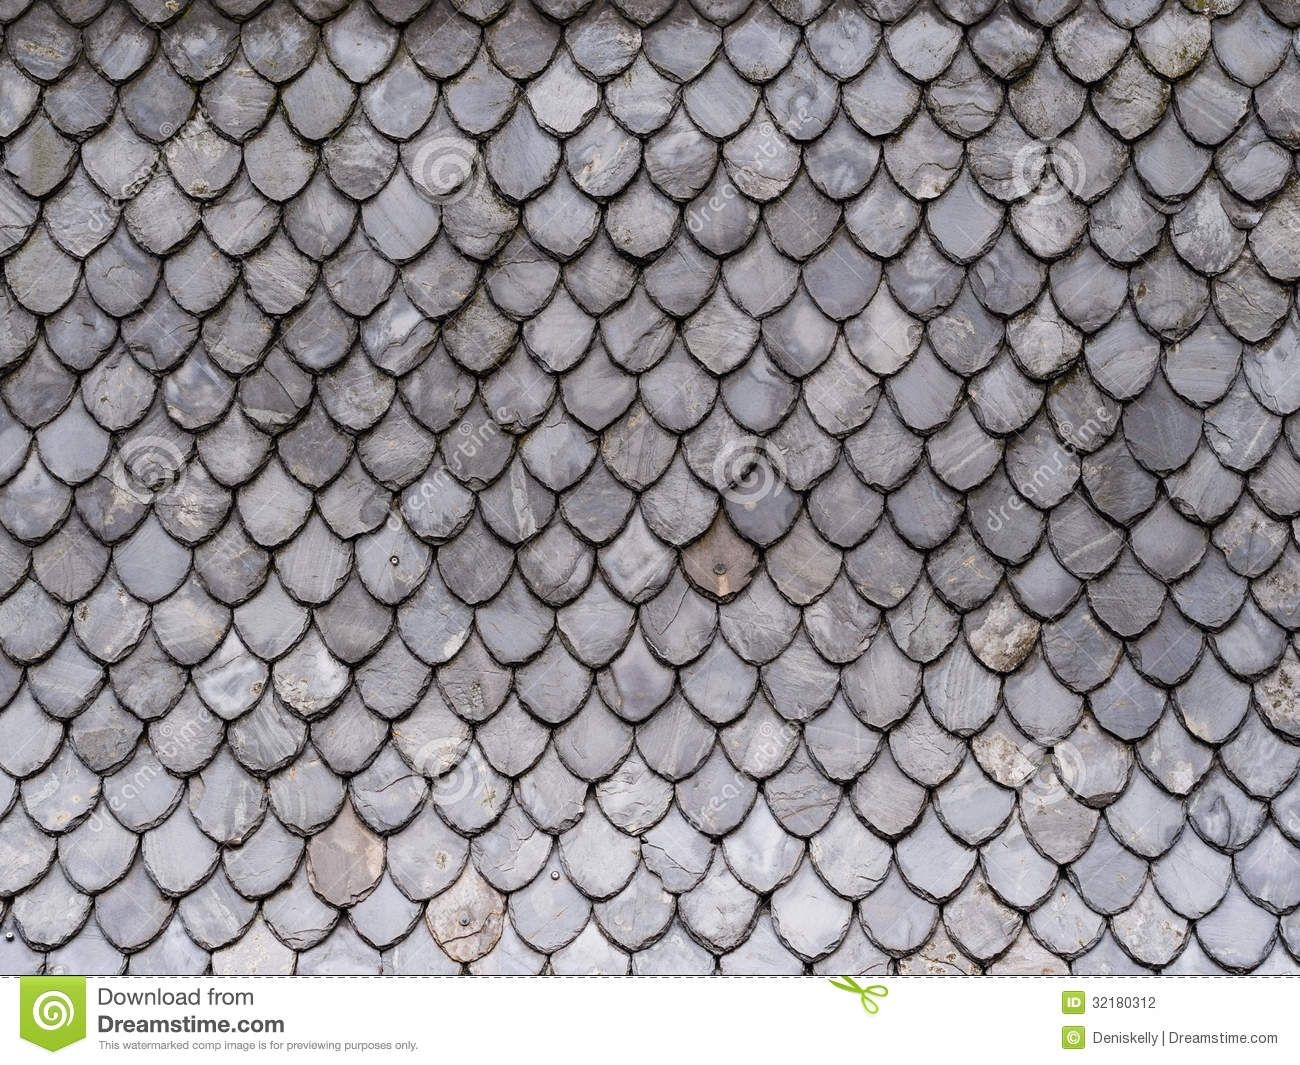 marvelous roof tile patterns #1: roof-tiles-abstract-pattern-close-up-detail-patterns-made-old-bergen-norway-32180312.jpg  (1300×1065) | Houses u0026 Homes | Pinterest | Photos and Search